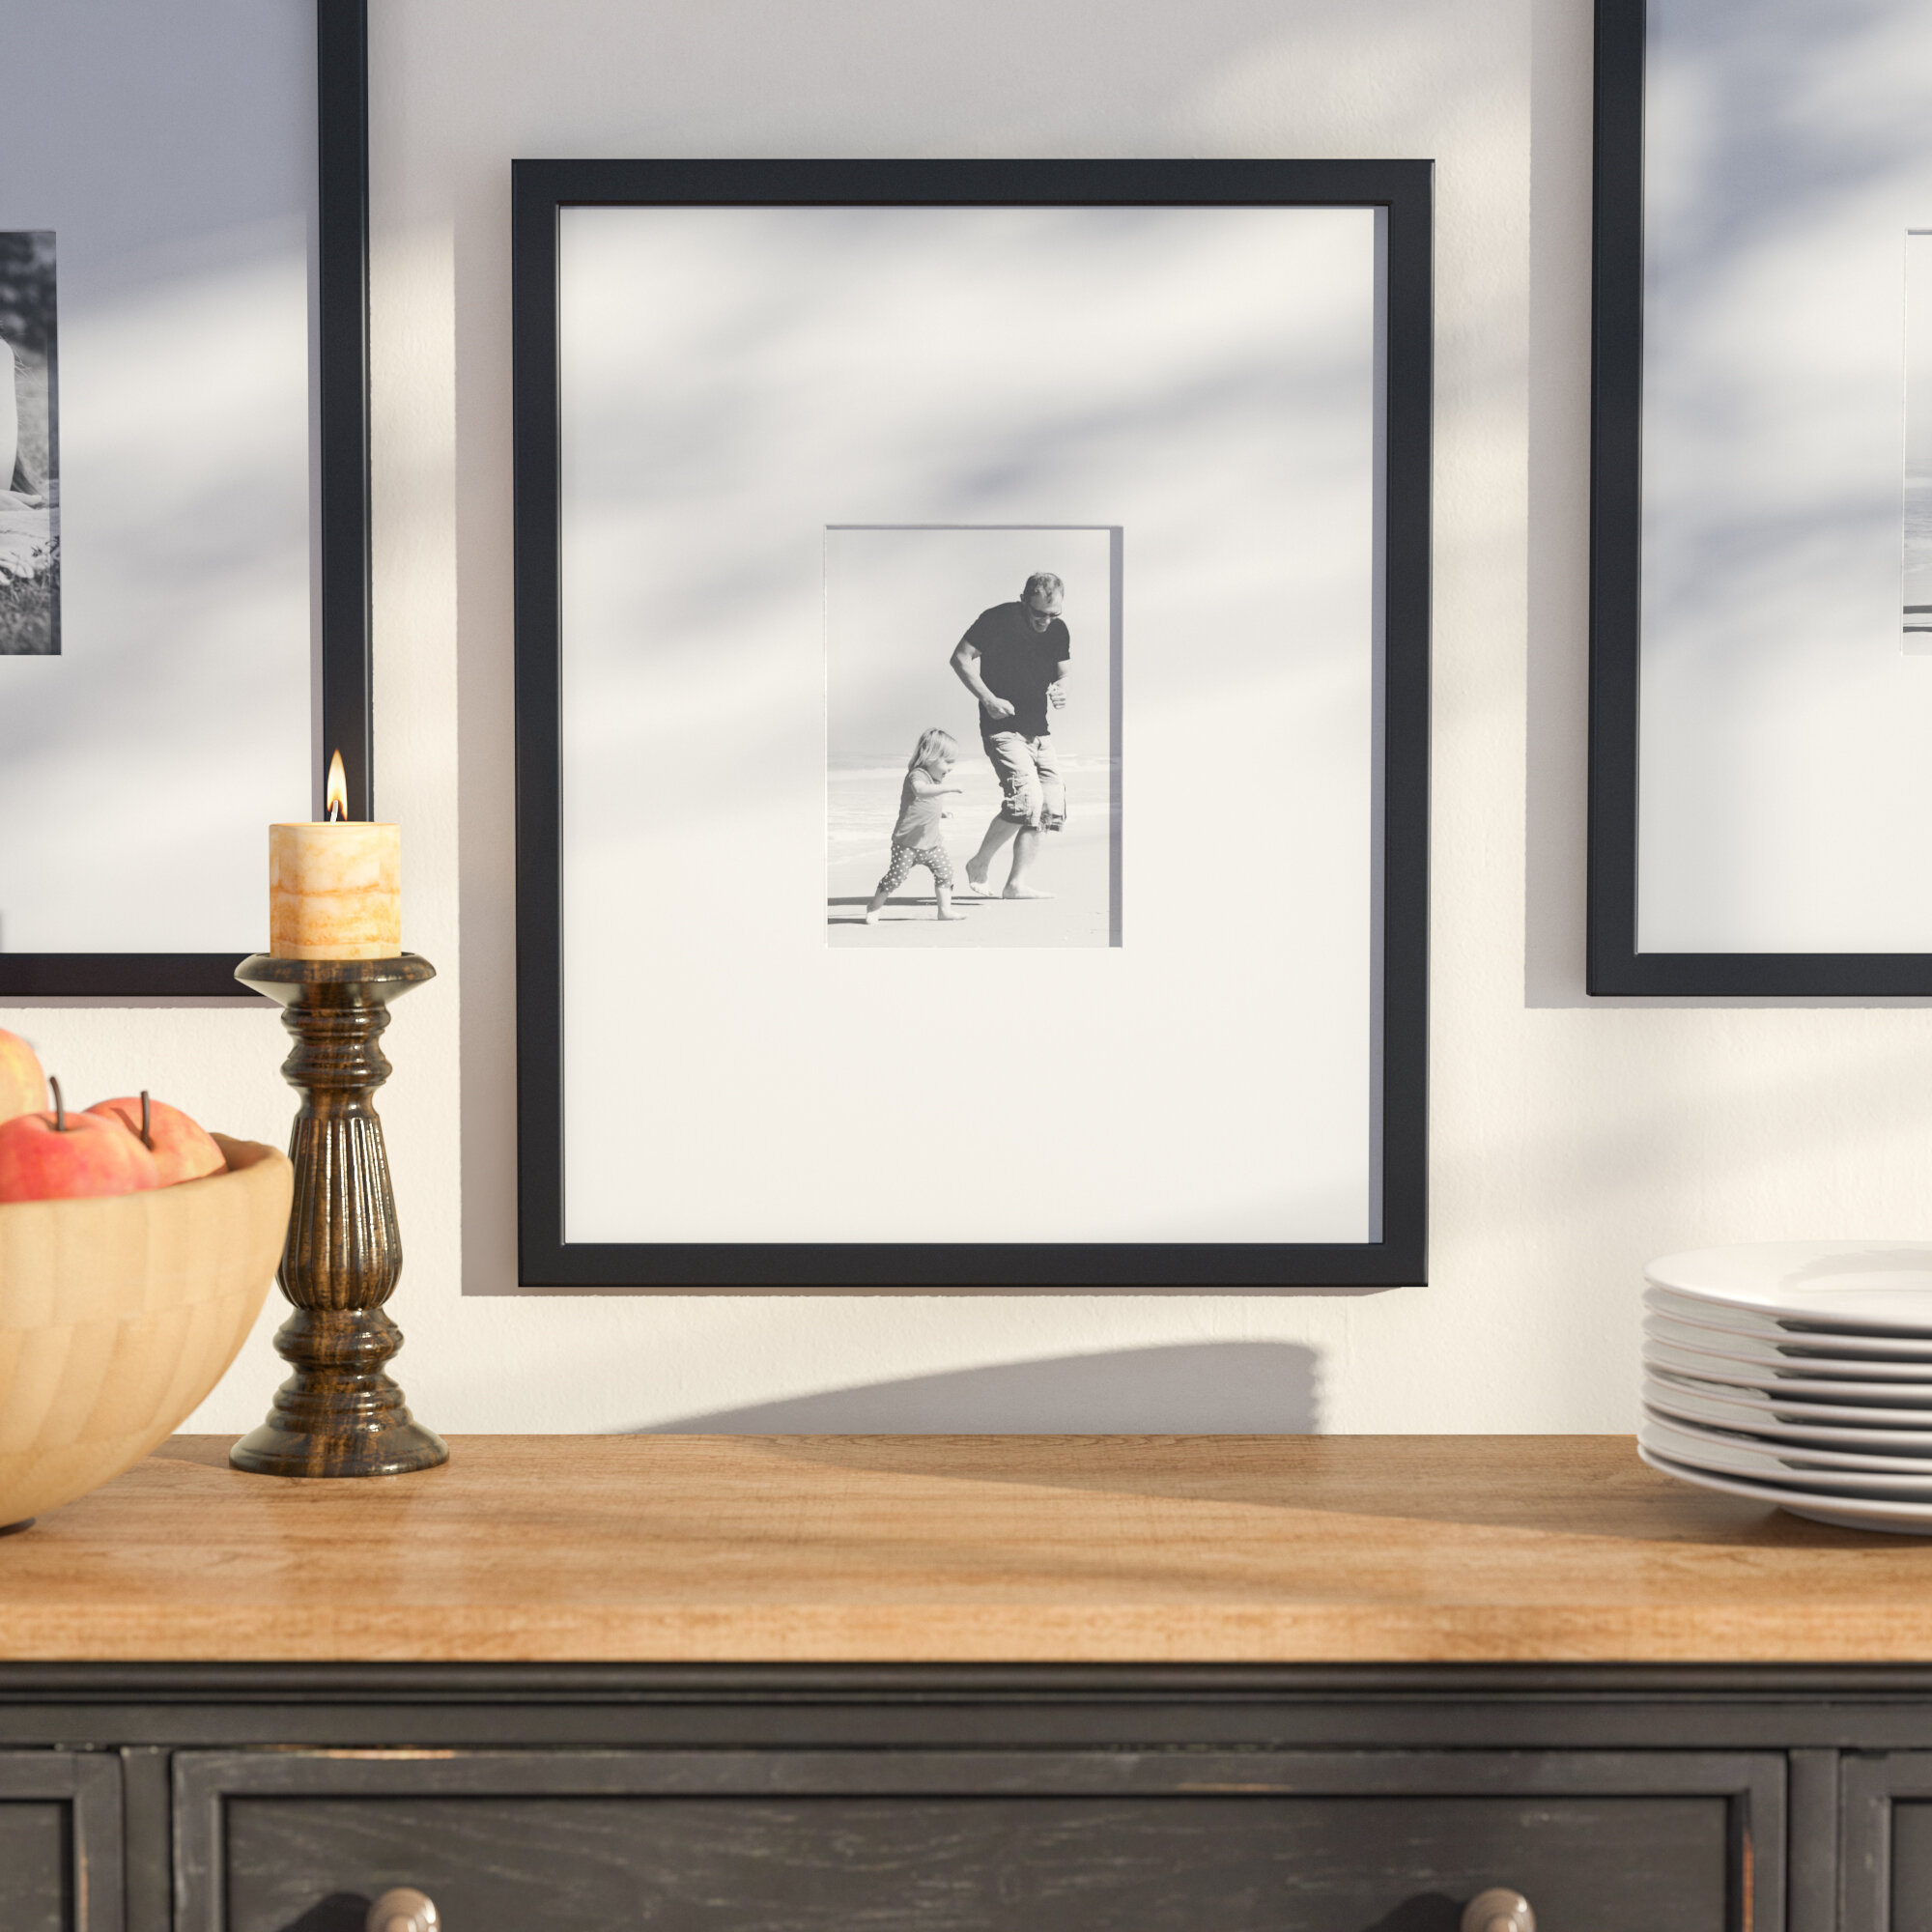 Charlton Home Signature Picture Frame & Reviews | Wayfair